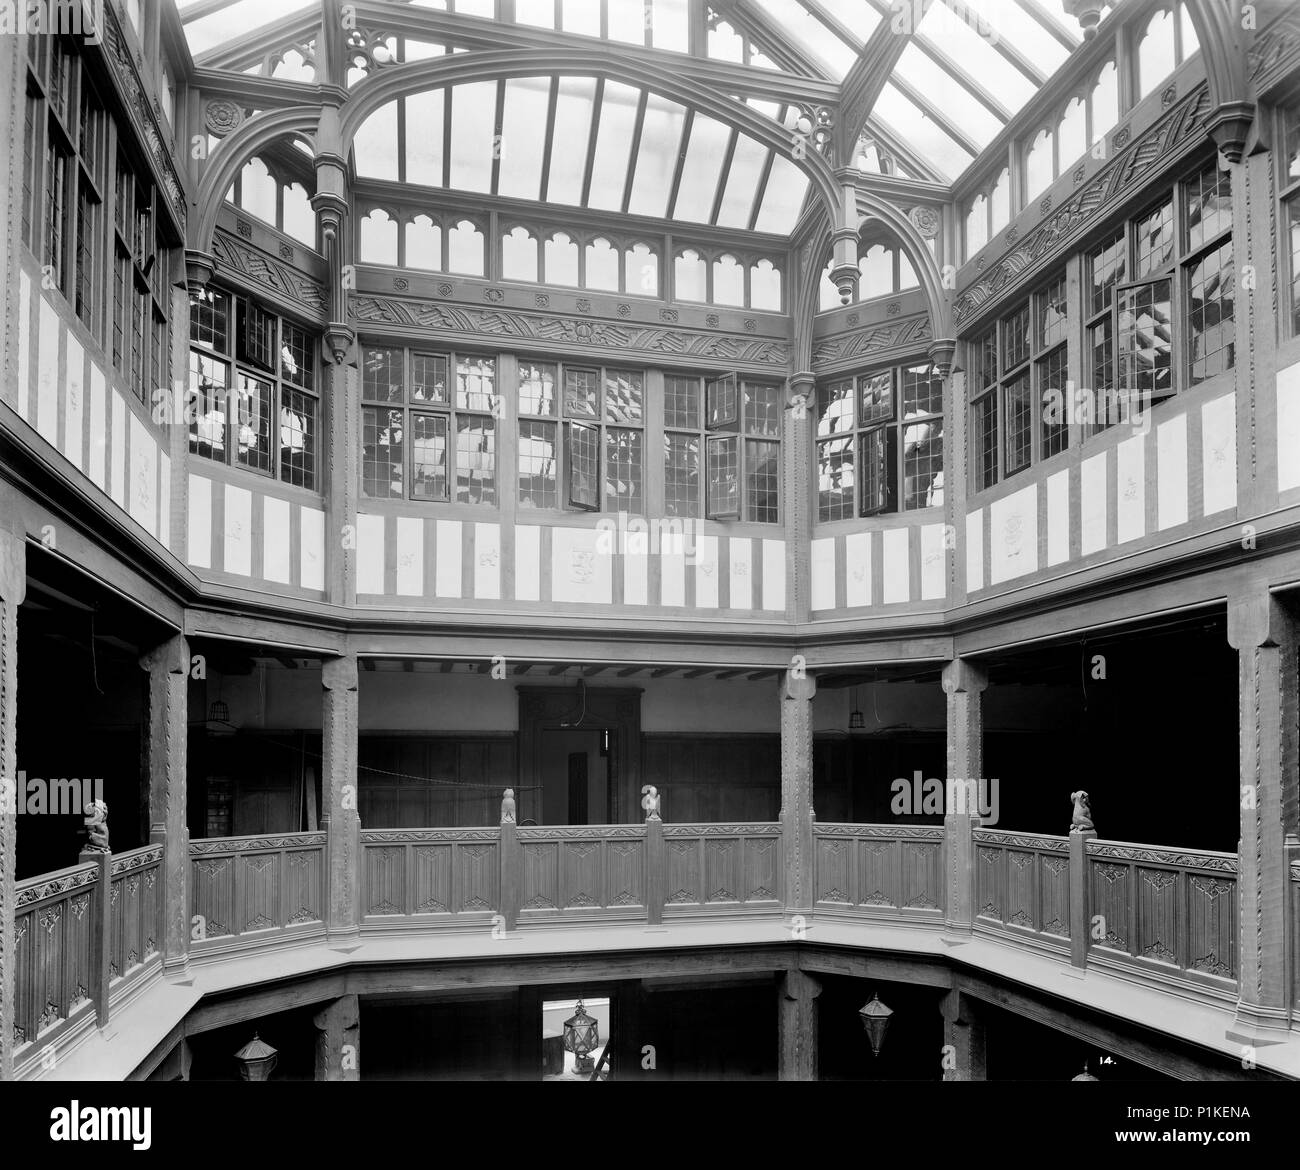 Liberty and Co department store, Regent Street, London, 1924. Interior of Liberty's newly completed Arts and Crafts Tudor style department store, show - Stock Image